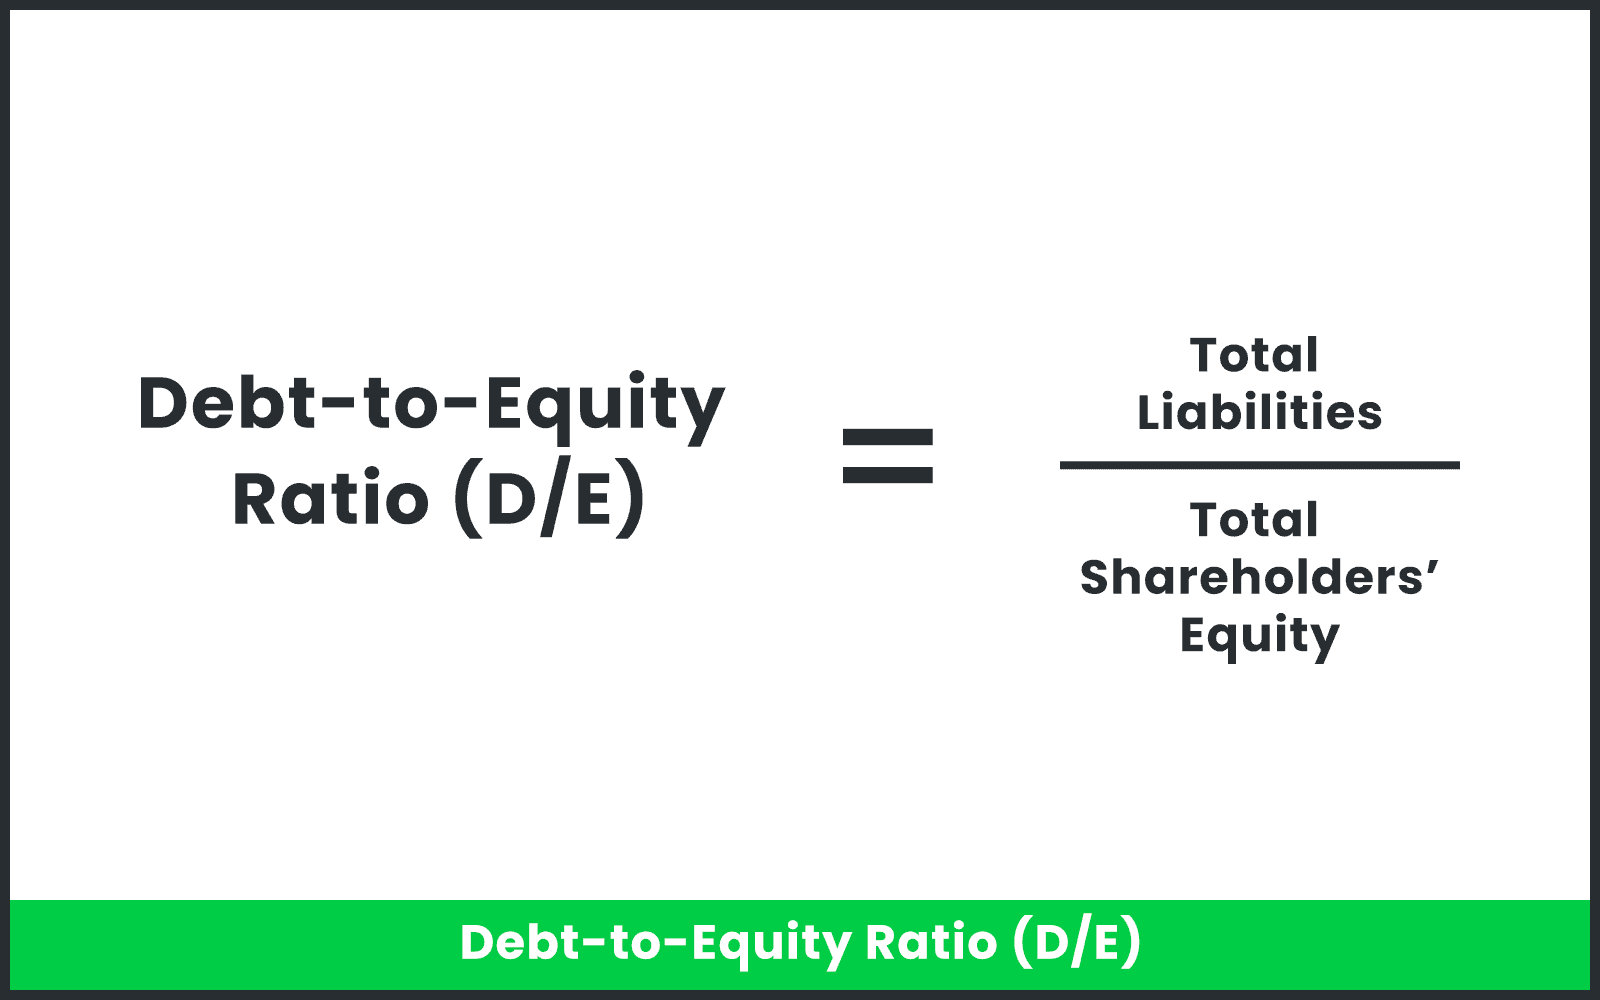 The equation of the Debt to Equity ratio